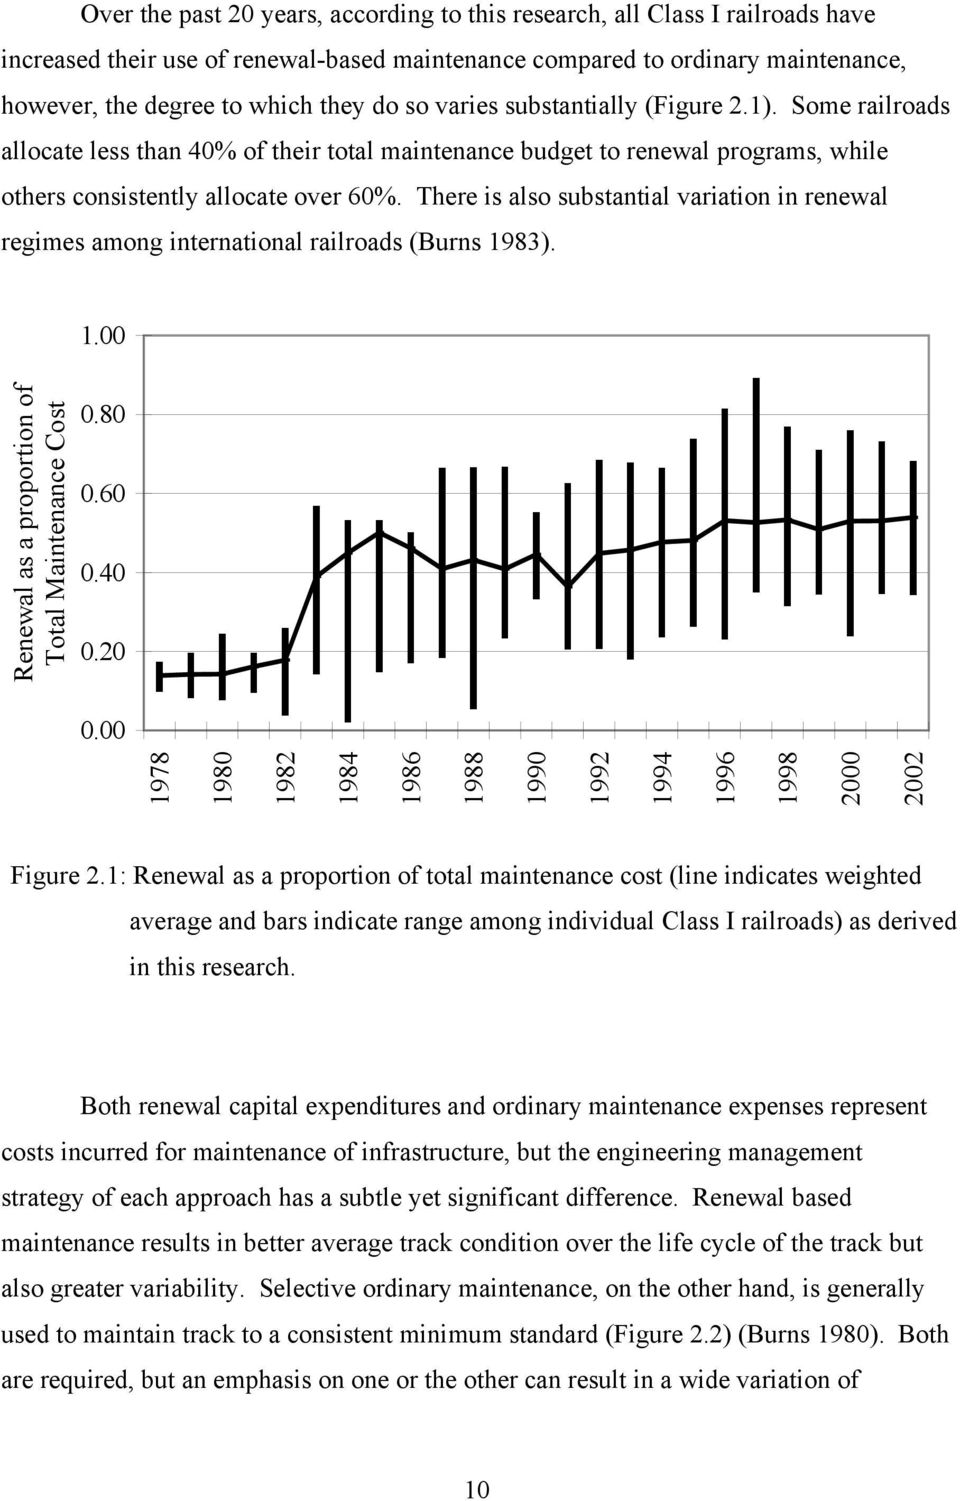 There is also substantial variation in renewal regimes among international railroads (Burns 1983). 1.00 Renewal as a proportion of Total Maintenance Cost 0.80 0.60 0.40 0.20 0.